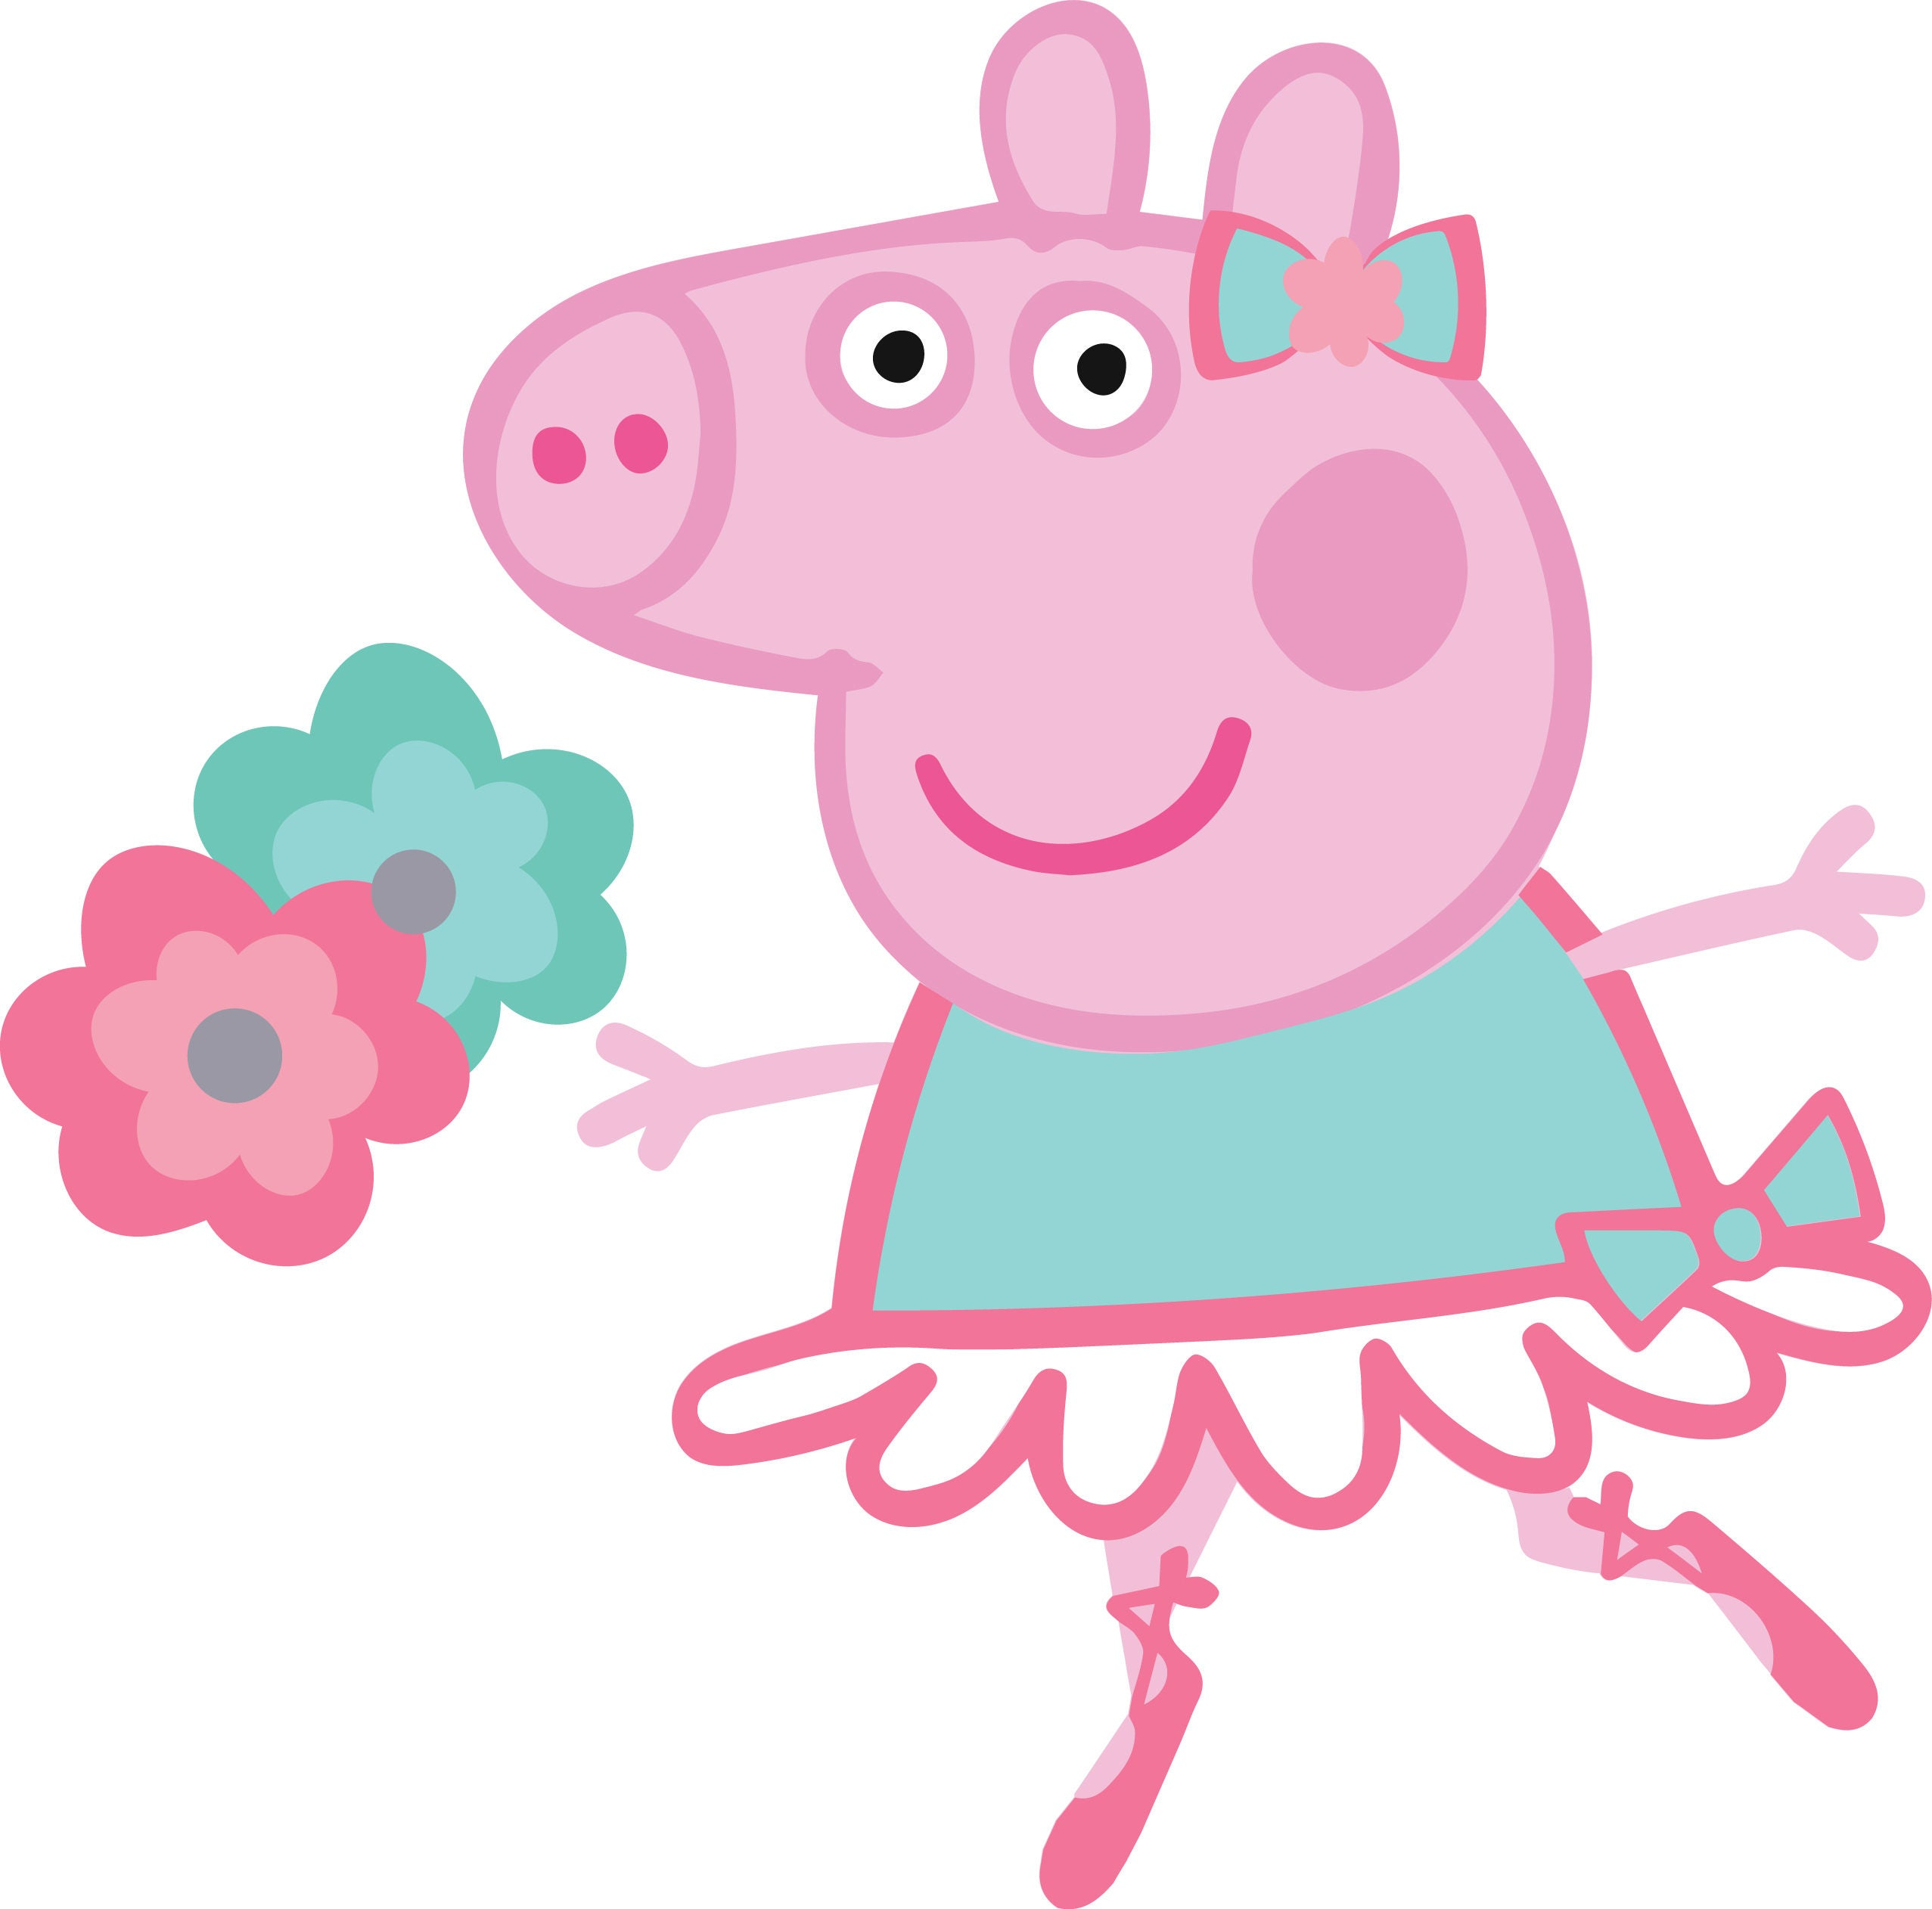 Peppa pig ballerina high quality s for cutting and printing zoom voltagebd Images